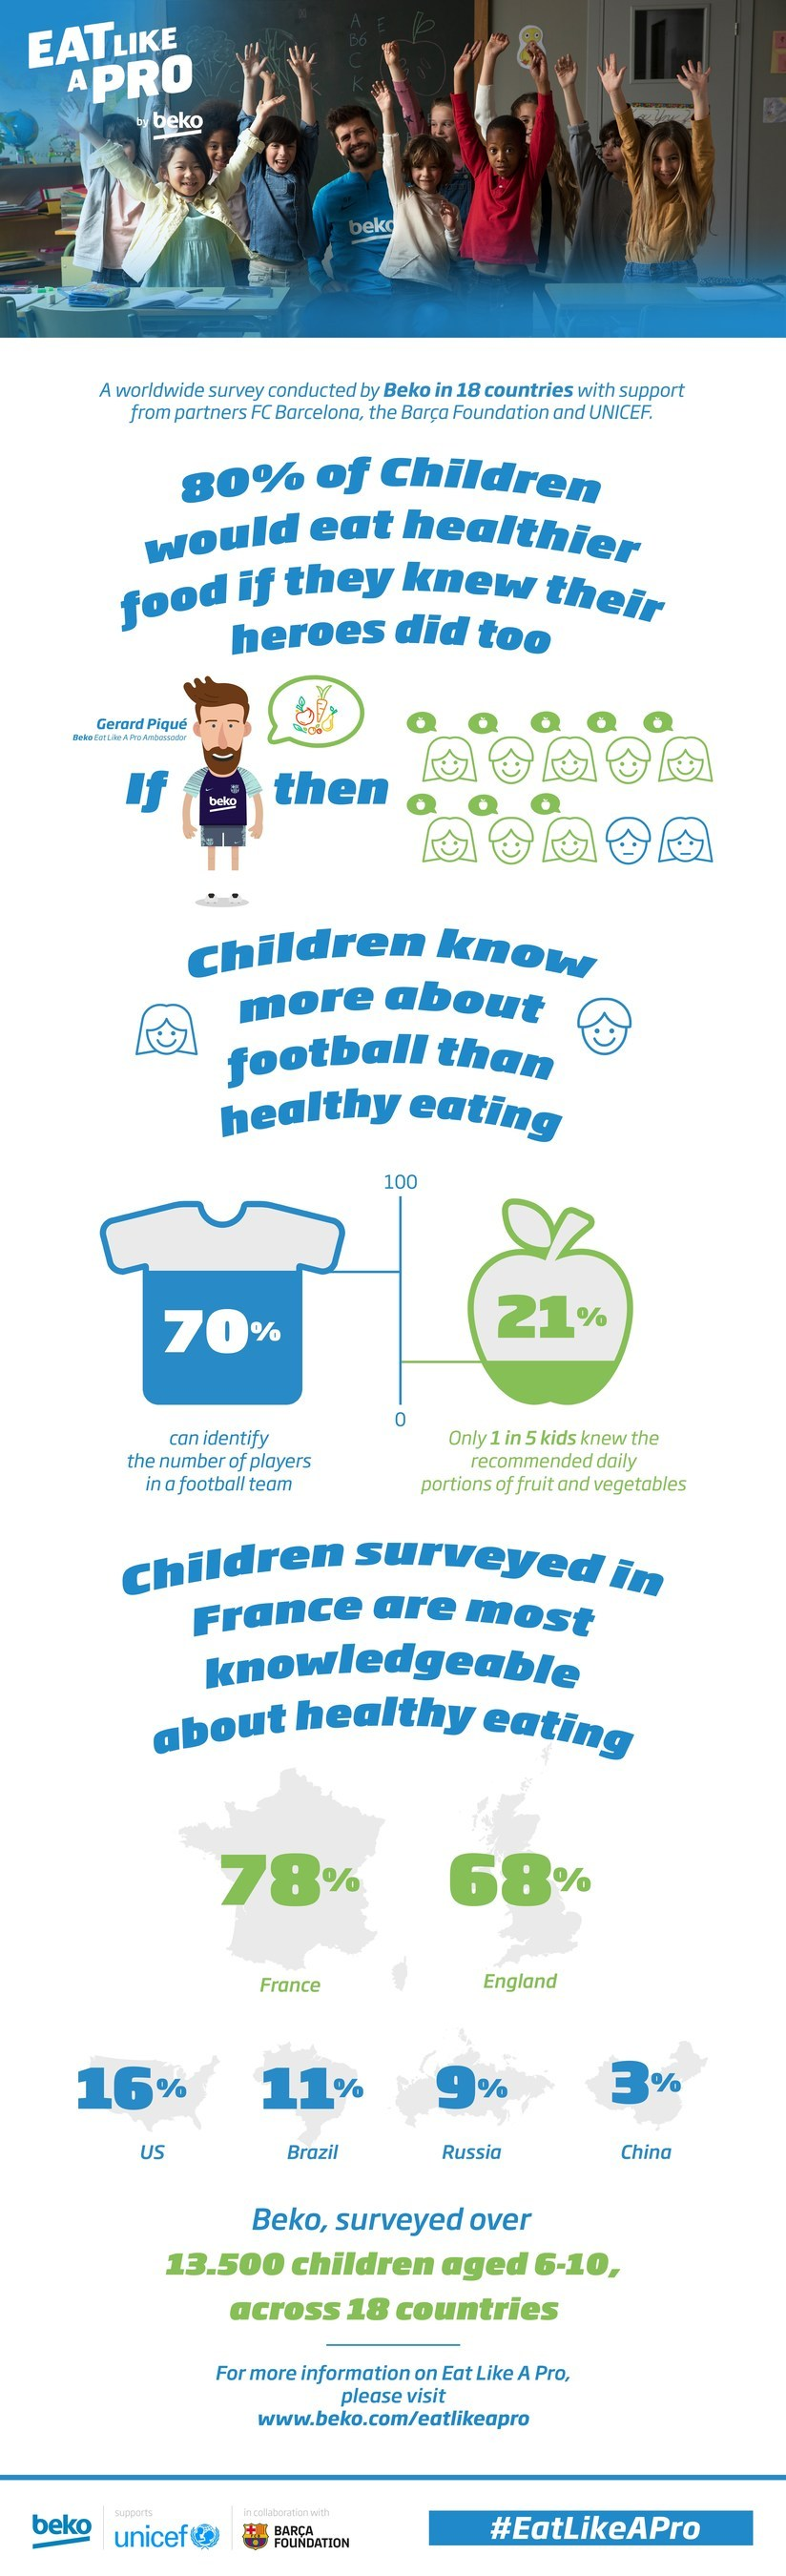 Infographic of the worldwide survey results conducted by Beko in 18 countries.